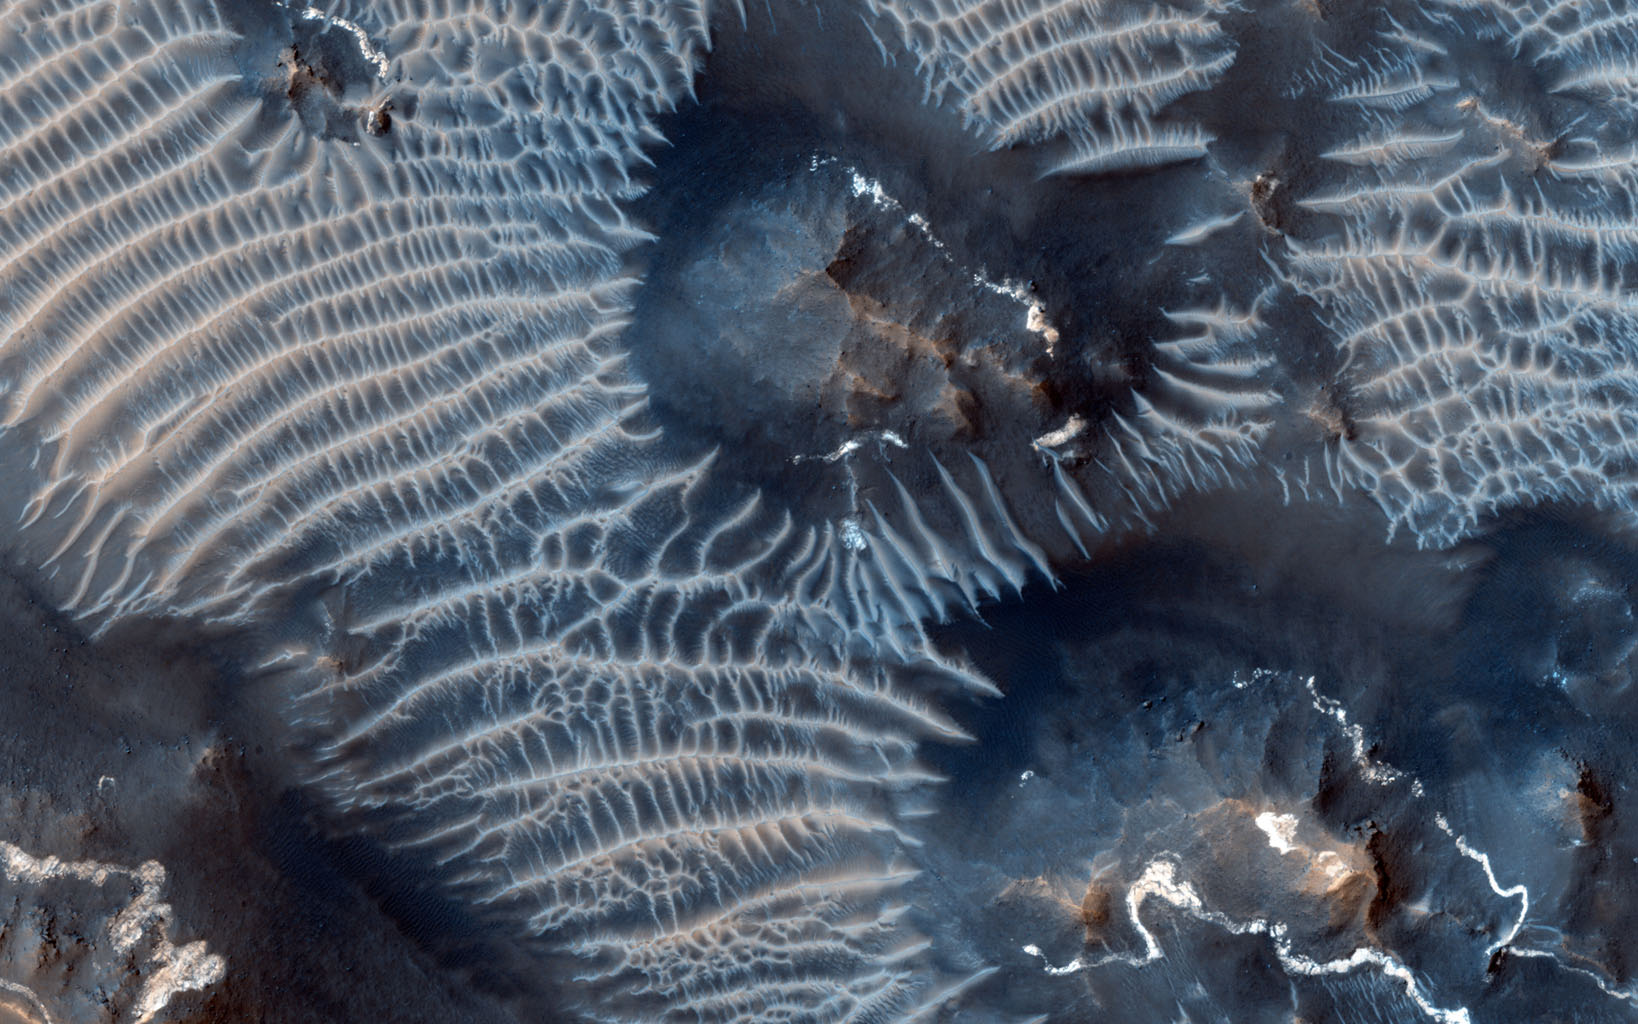 This colorful scene is situated in the Noctis Labyrinthus, perched high on the Tharsis rise in the upper reaches of the Valles Marineris canyon system as seen by NASA's Mars Reconnaissance Orbiter.